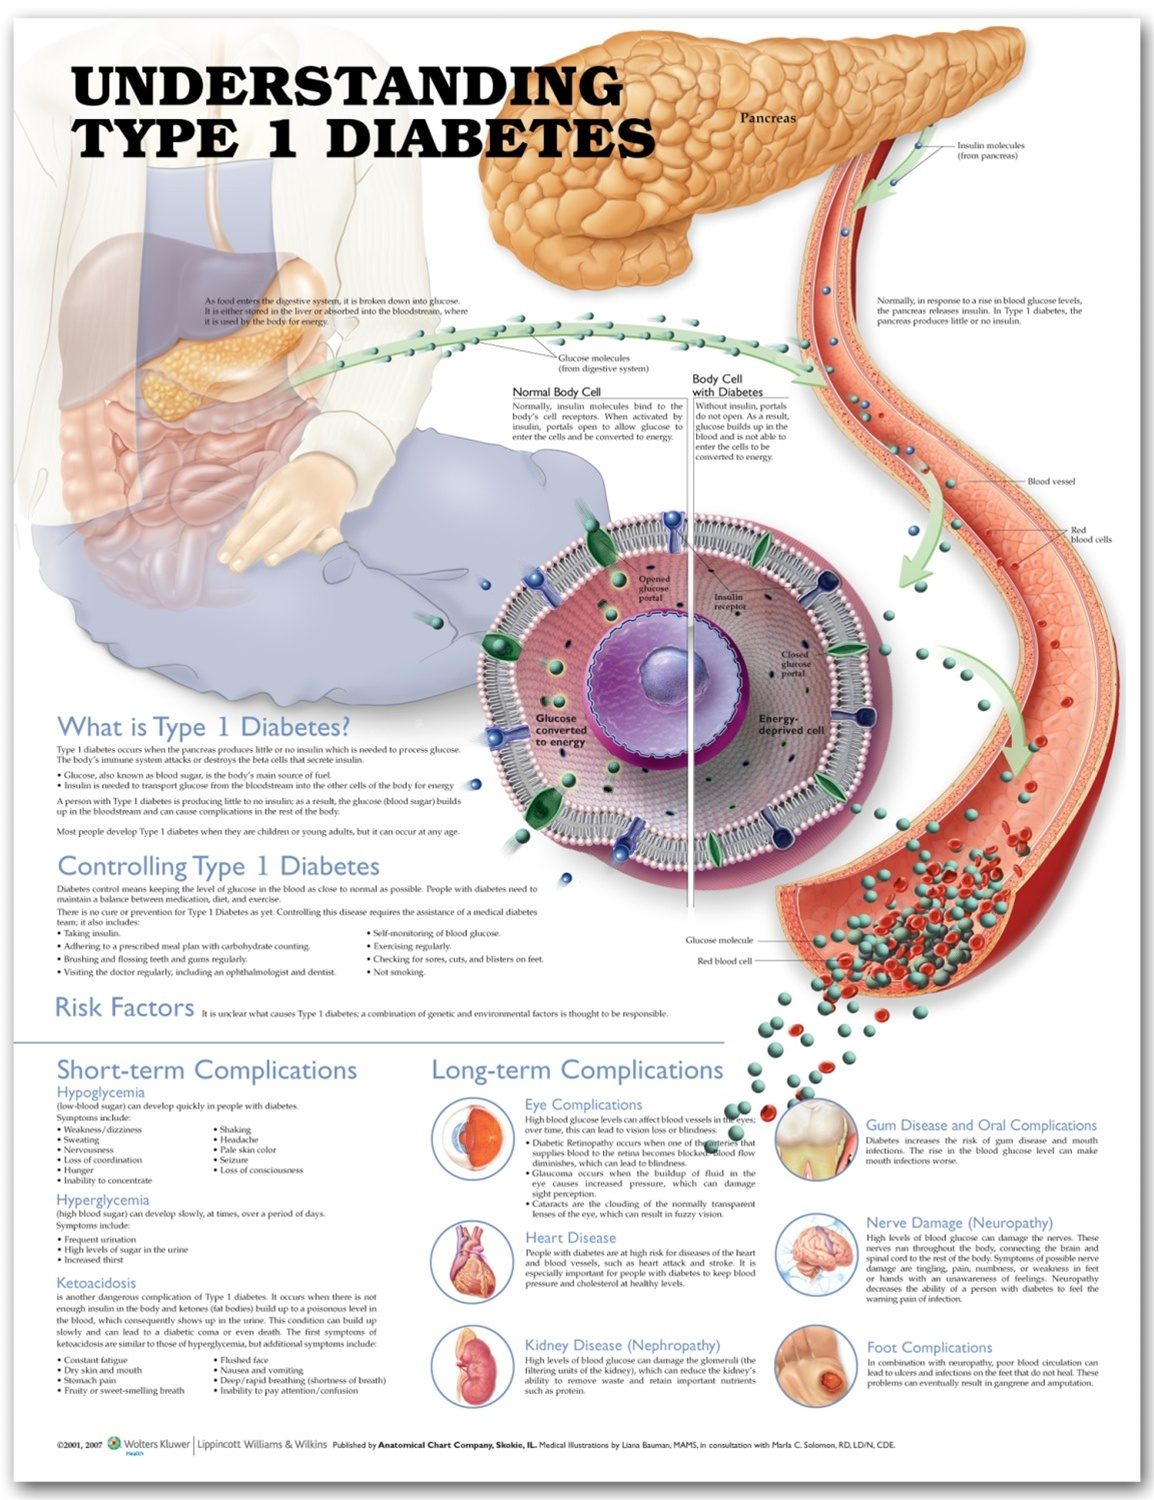 Anatomy of diabetes mellitus